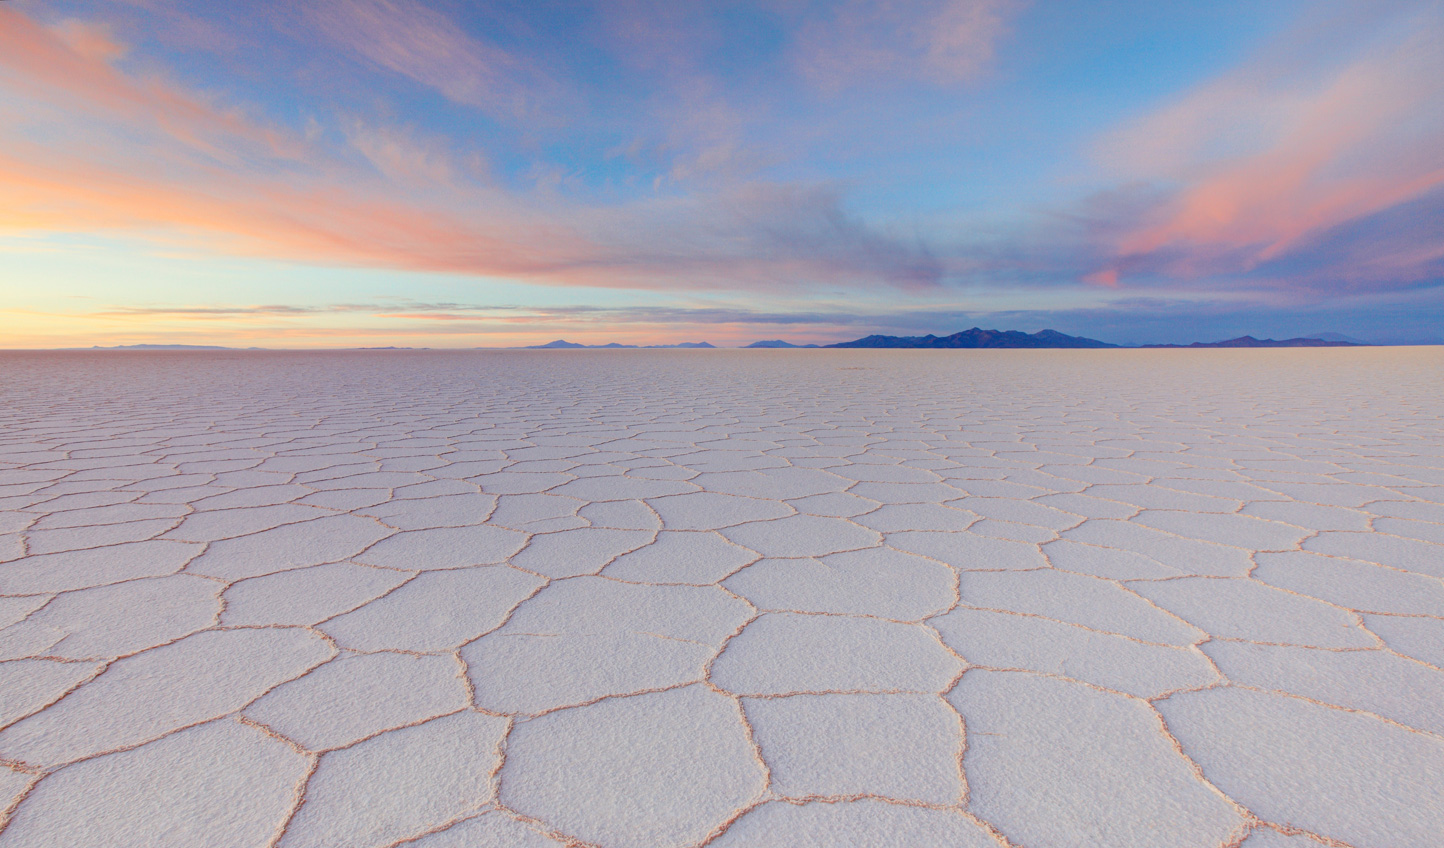 Home to breathtaking natural beauty and wide open skies; experience the splendour of Salar de Uyuni